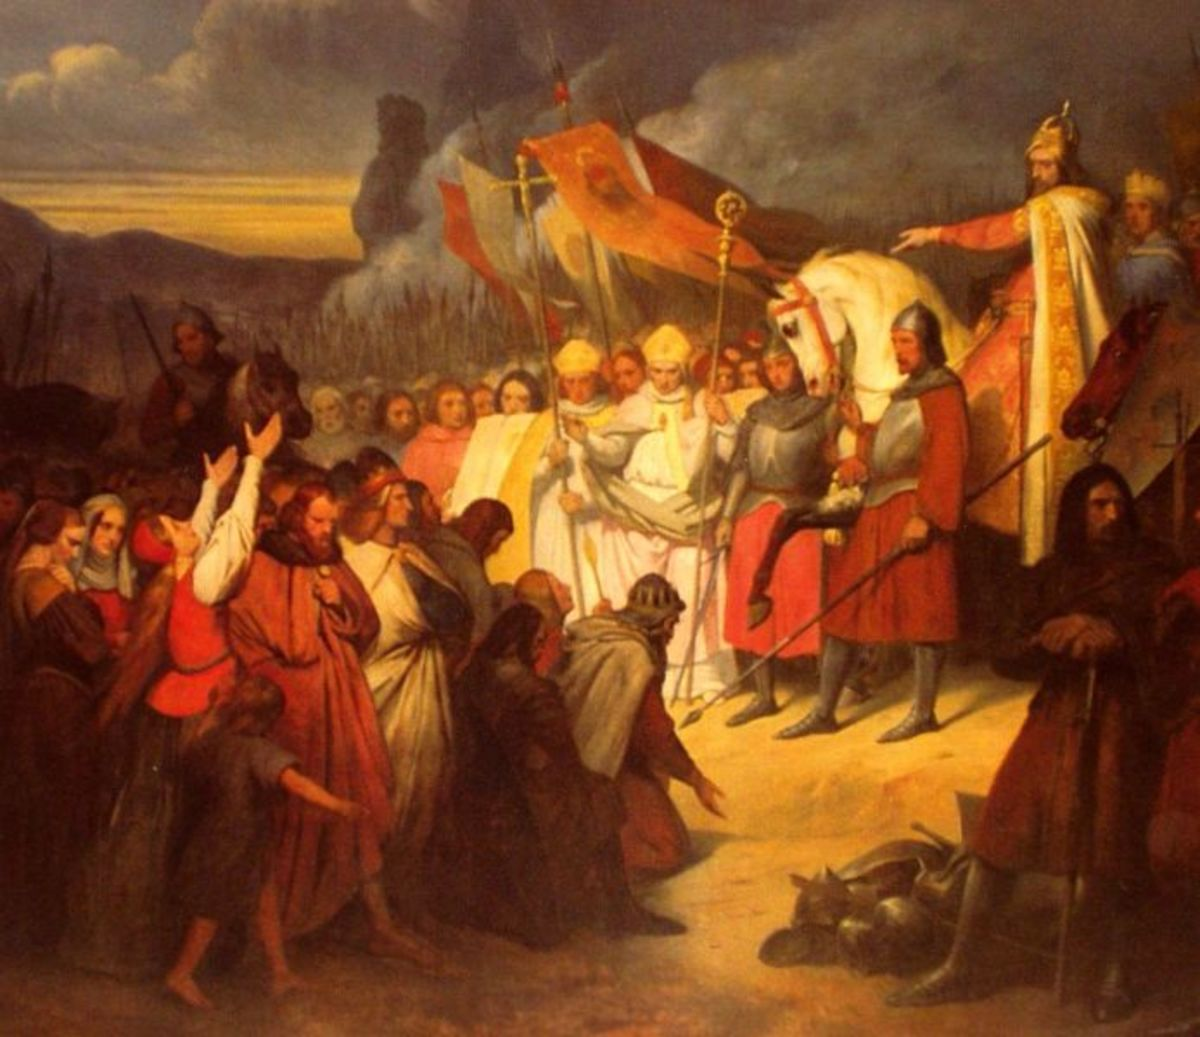 Massacre of Verden by Army of Charlemagne